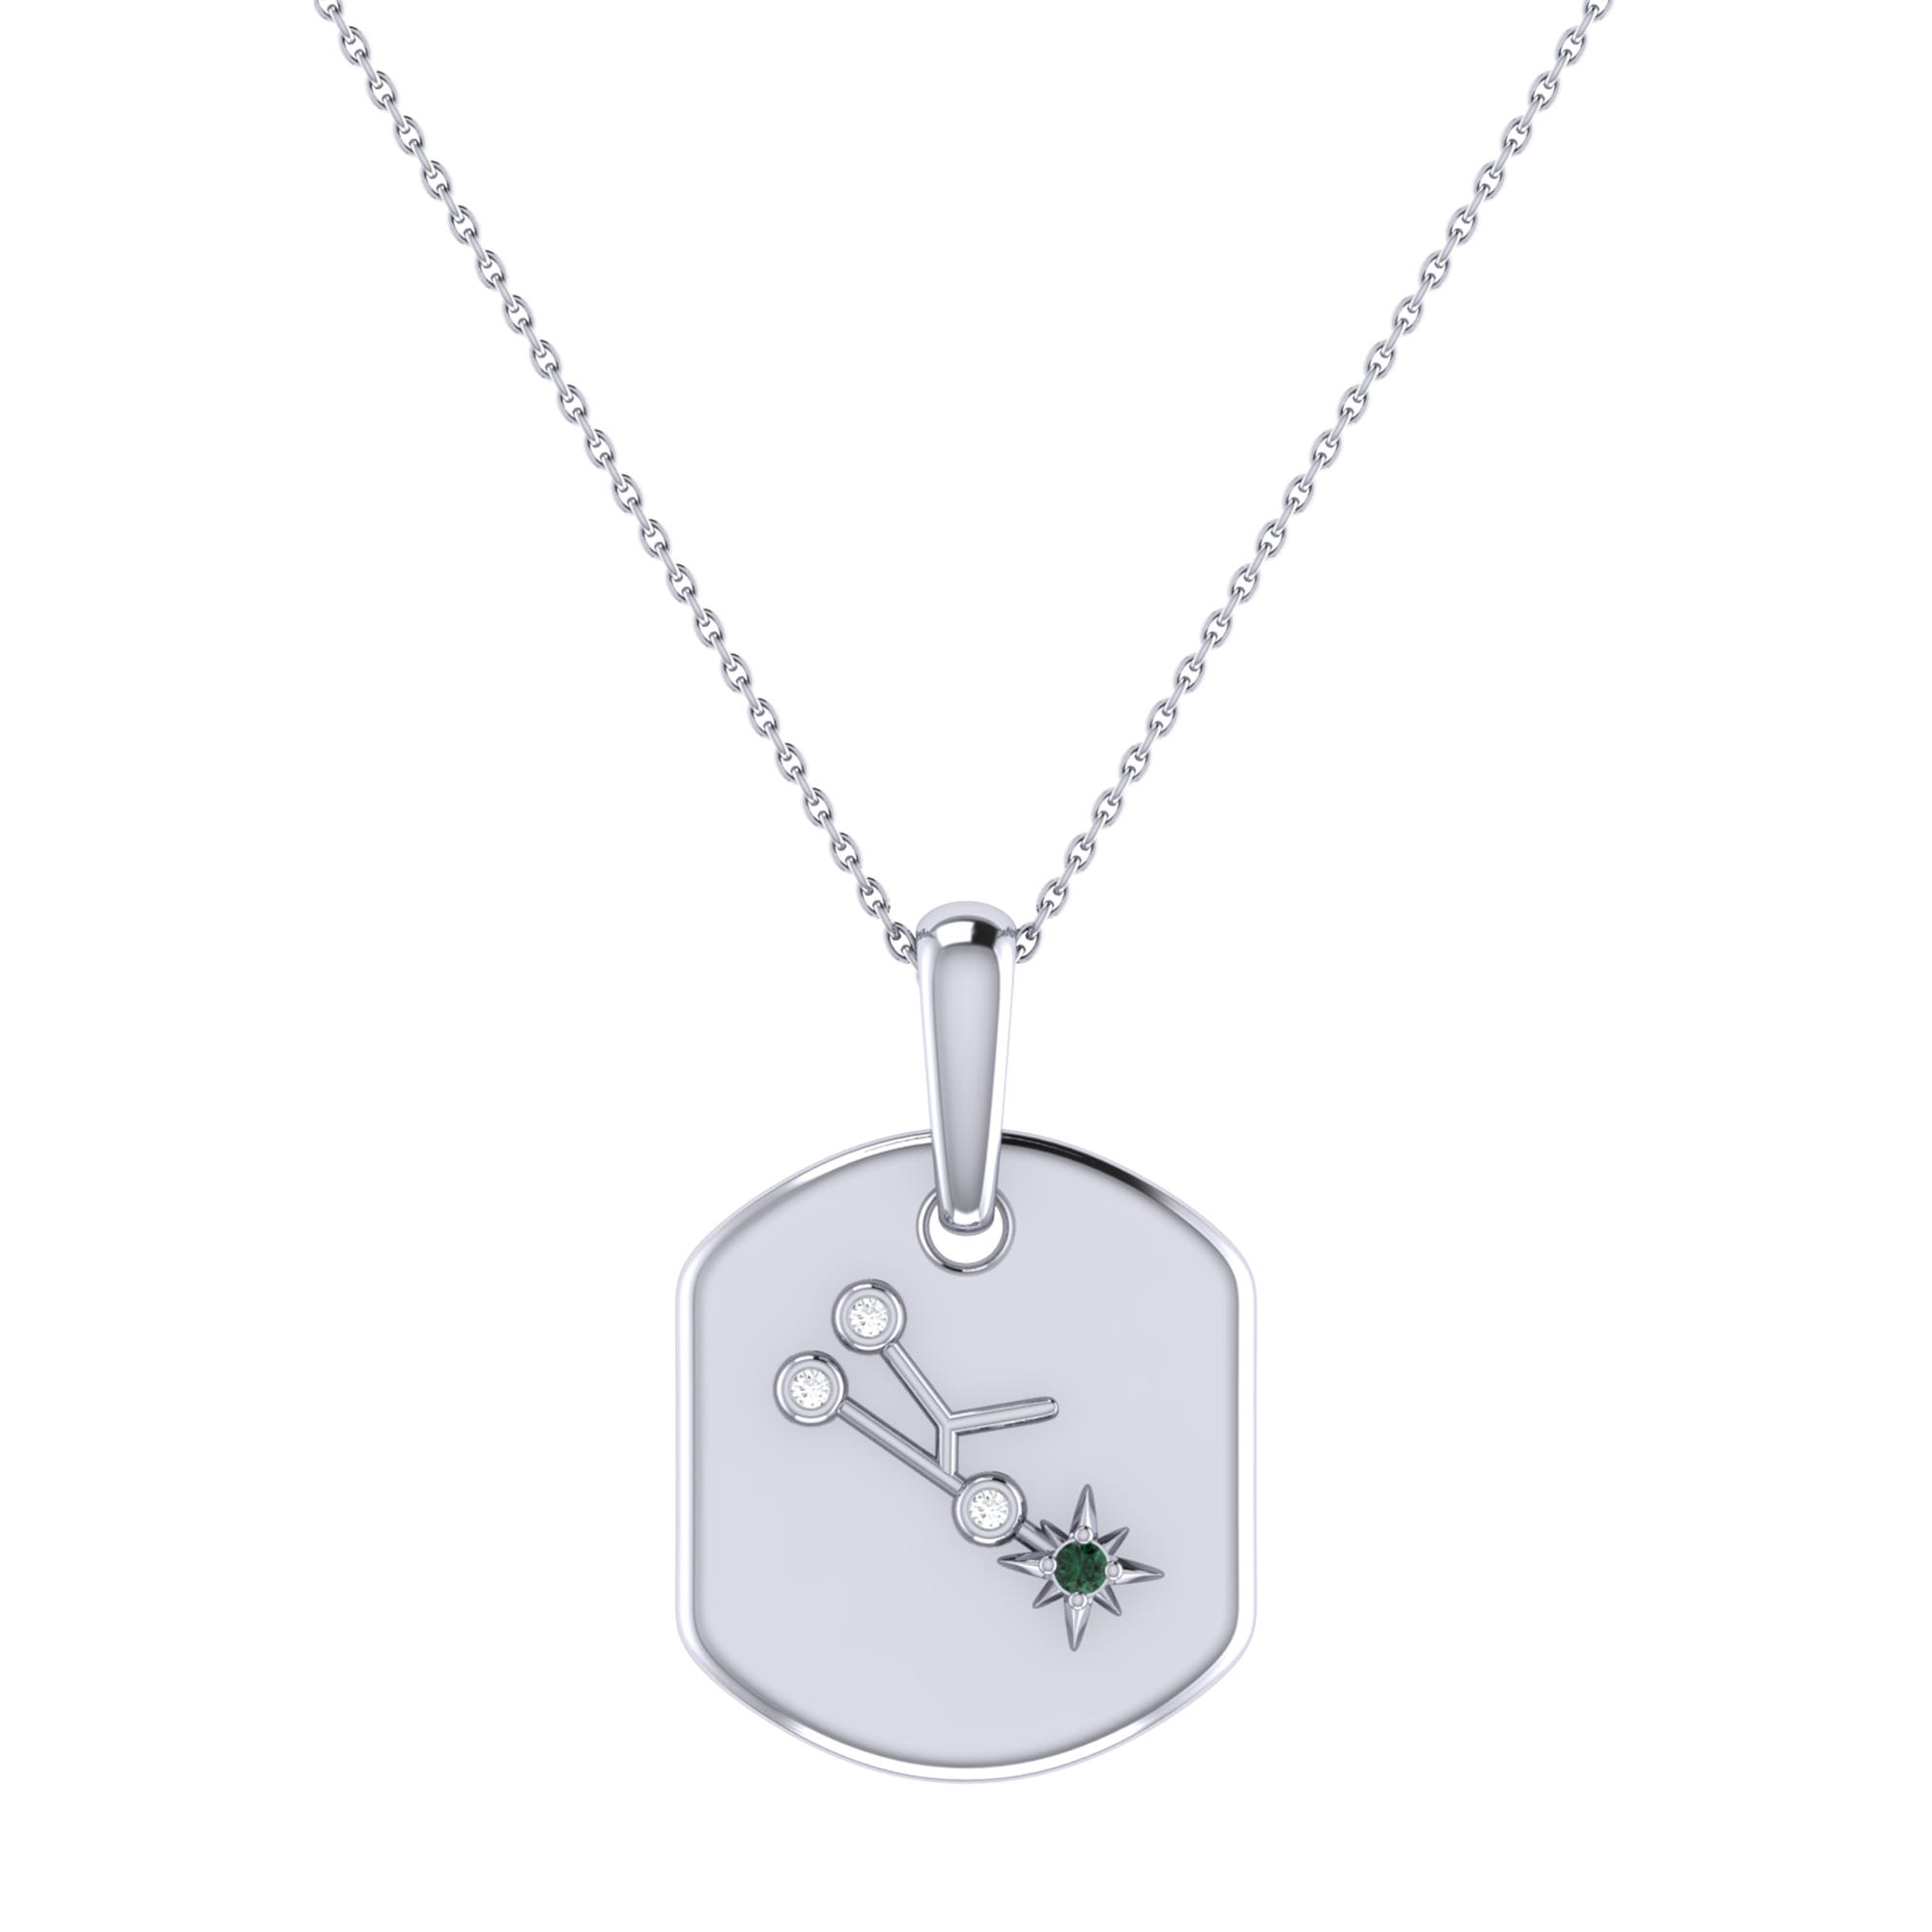 Diamond and Emerald Taurus Constellation Tag Necklace in Sterling Silver